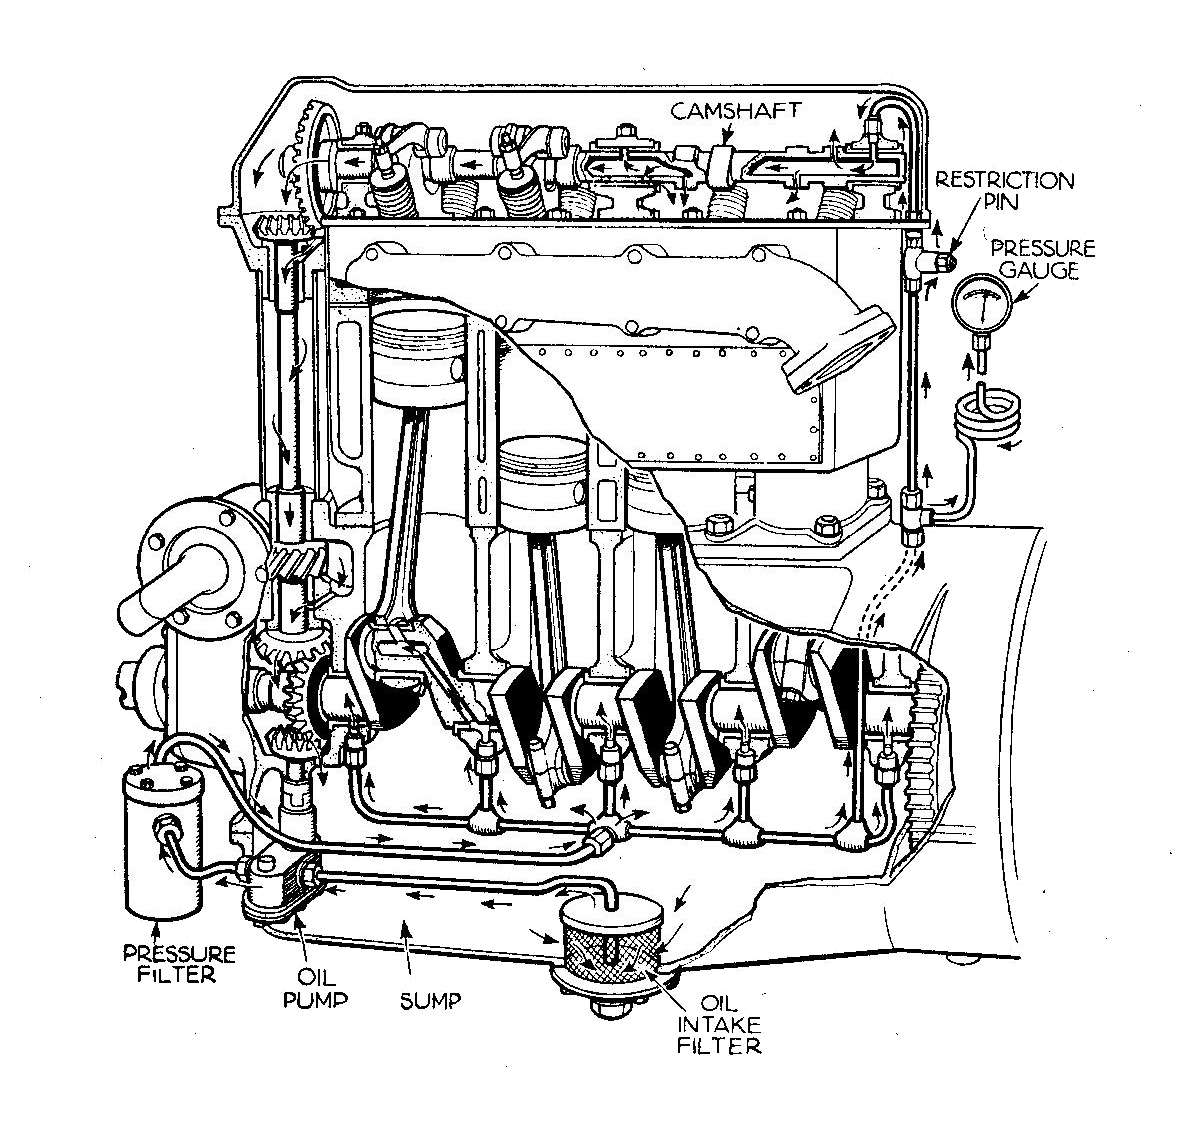 Oil Pump Internal Combustion Engine Wikipedia Diagram Besides Chevy Truck Wiring Together With 5 Pin Relay